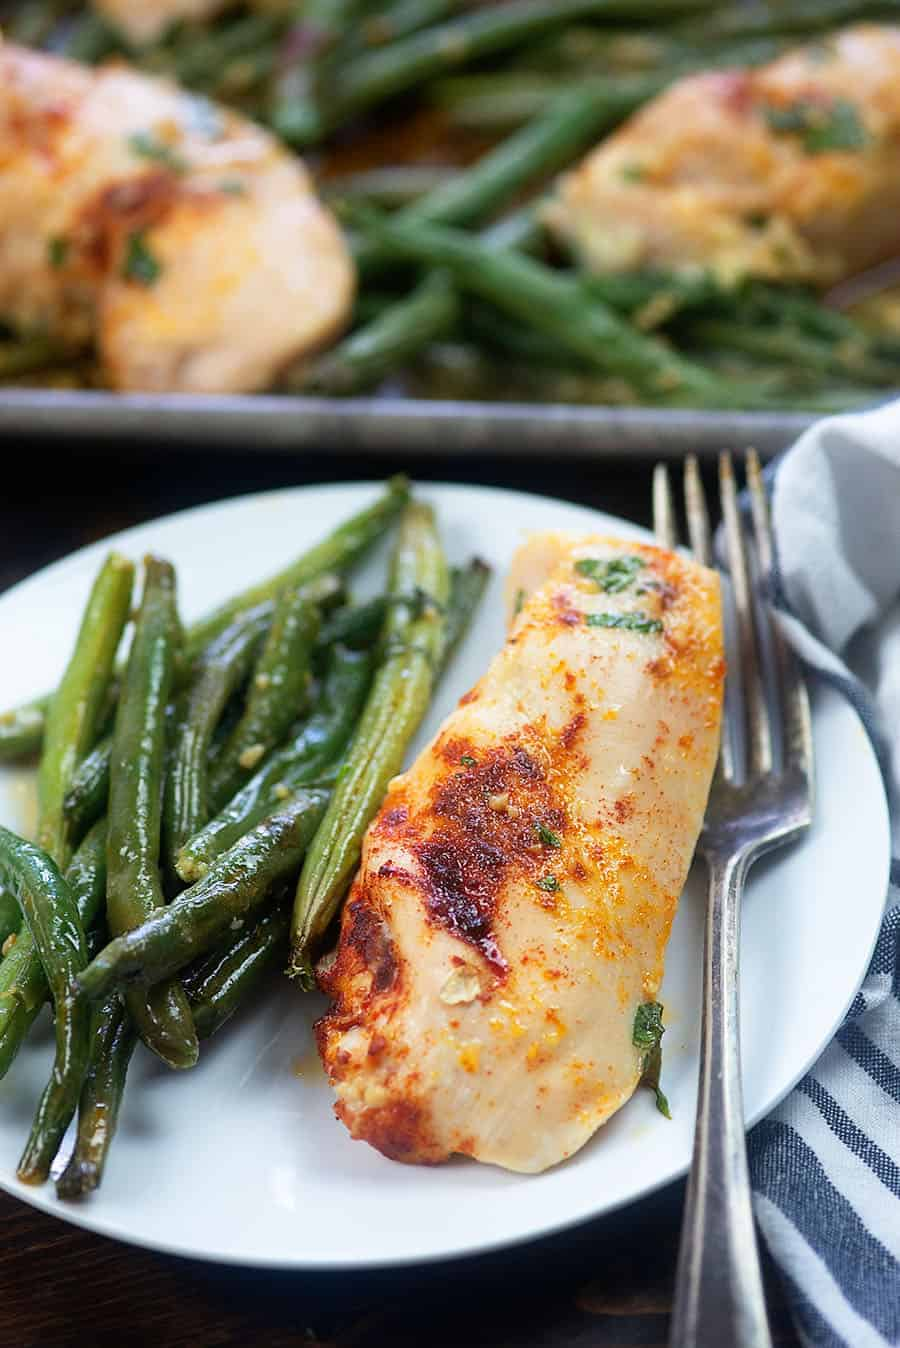 Sheet Pan Garlic Butter Chicken and Green Beans!! Easiest dinner ever and it's low carb too! #lowcarb #keto #garlic #sheetpan #chicken